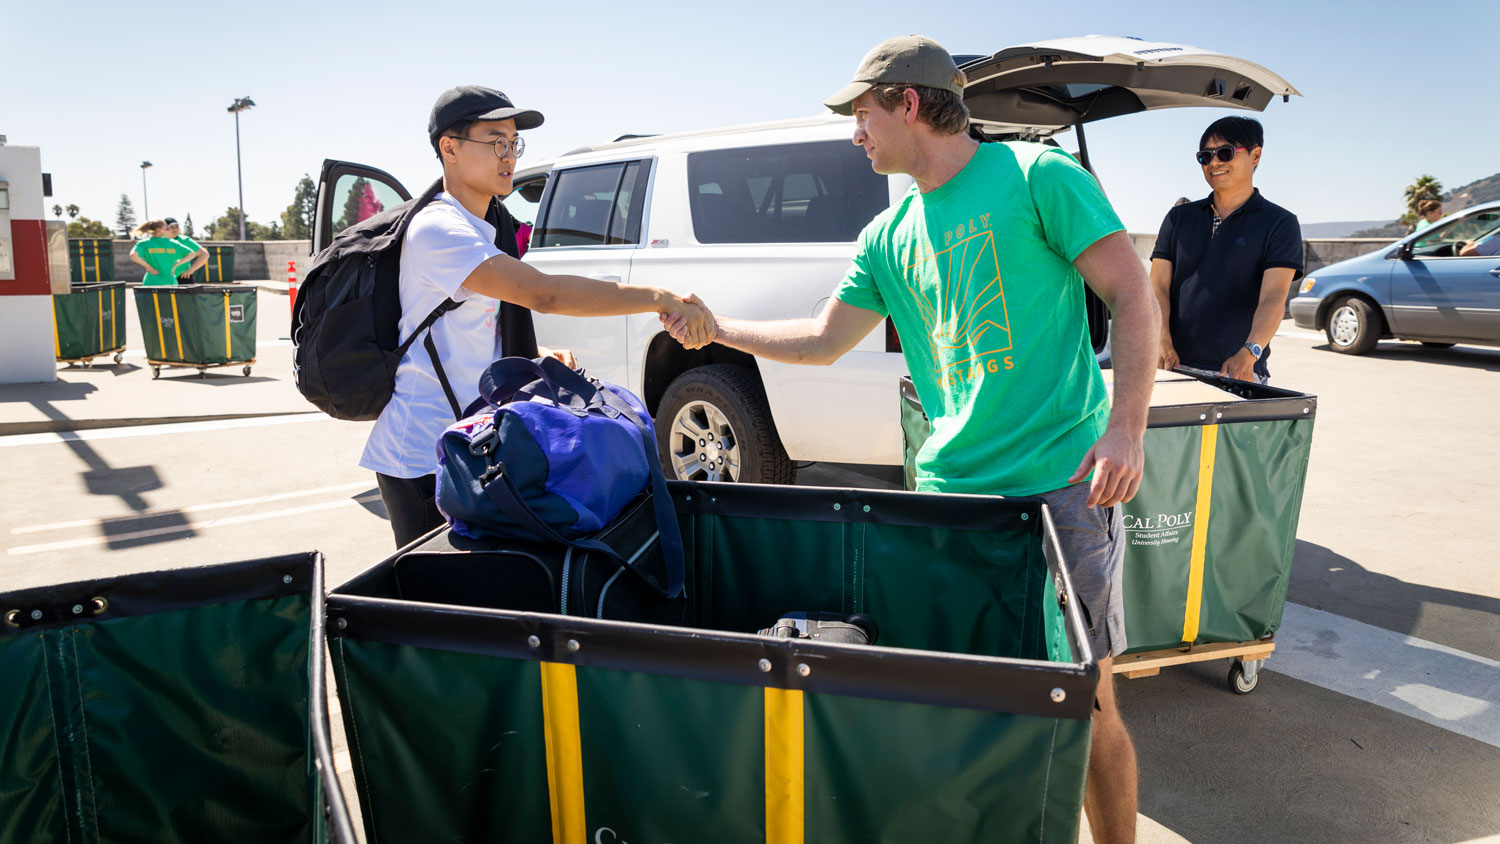 A new Cal Poly student and a volunteer shake hands while loading a cart on move-in day